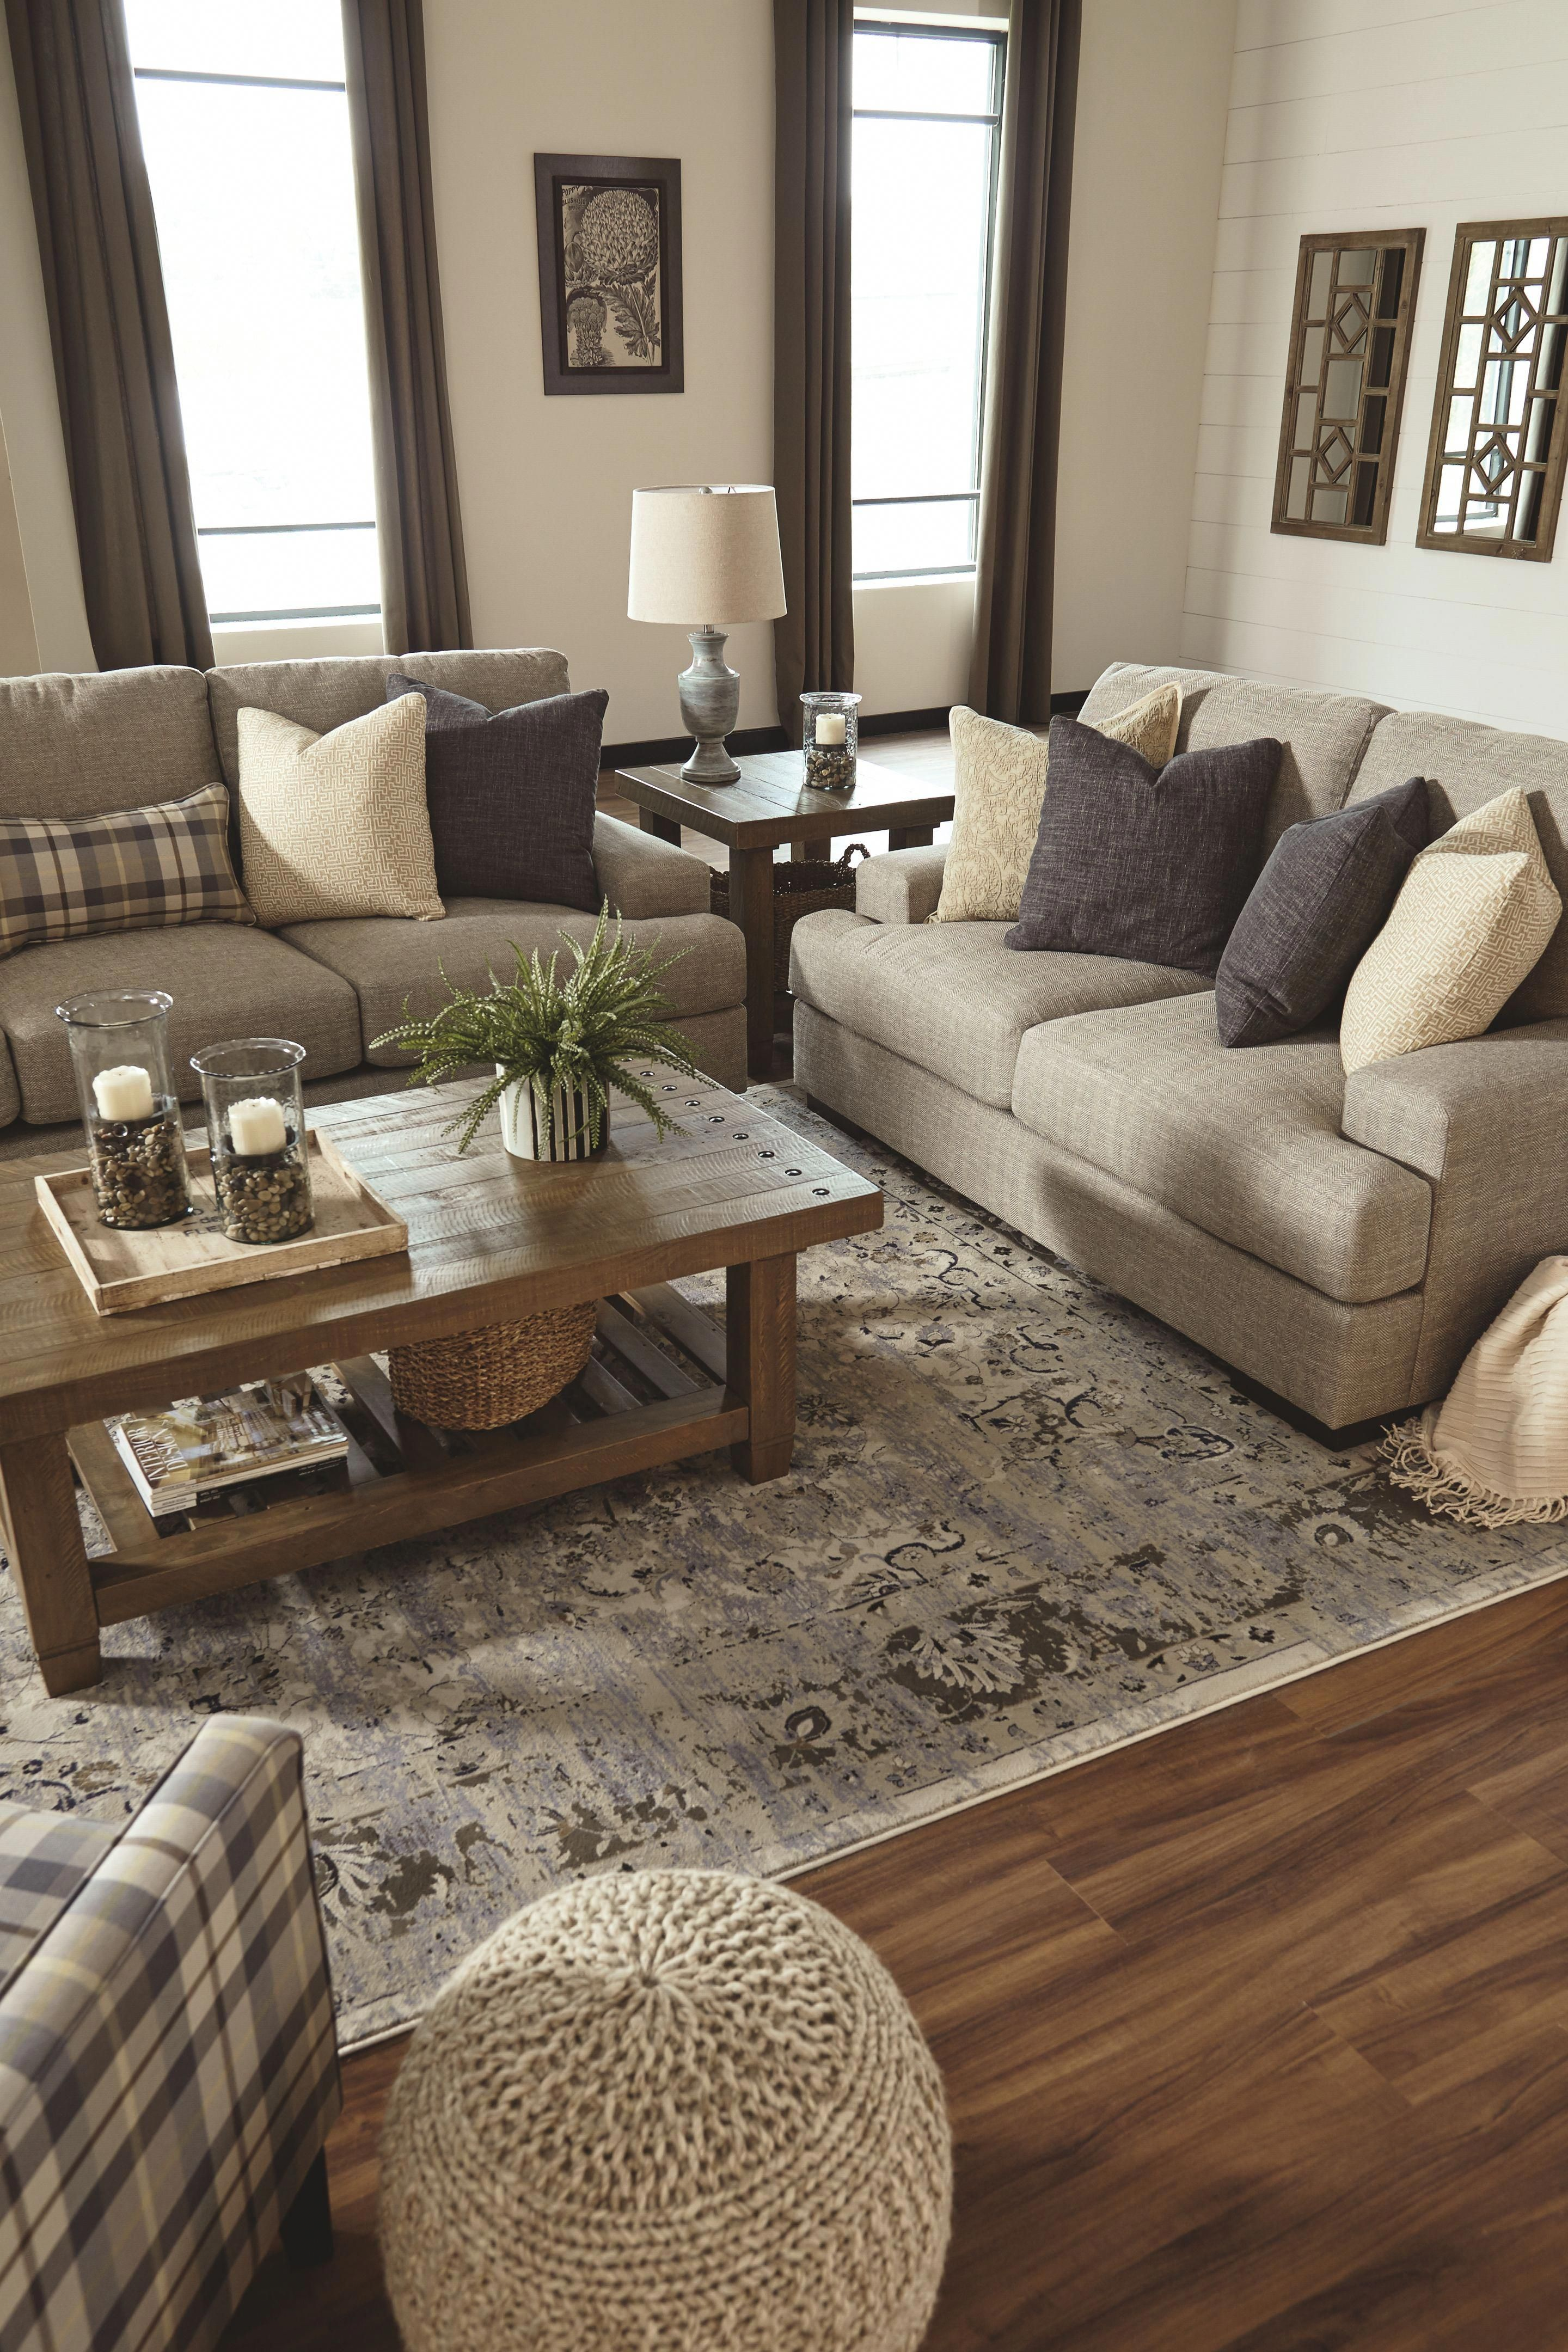 Living Room Decor Ideas Tumblr: Cozy All White Living Room Decor. Rustic, Farmhouse